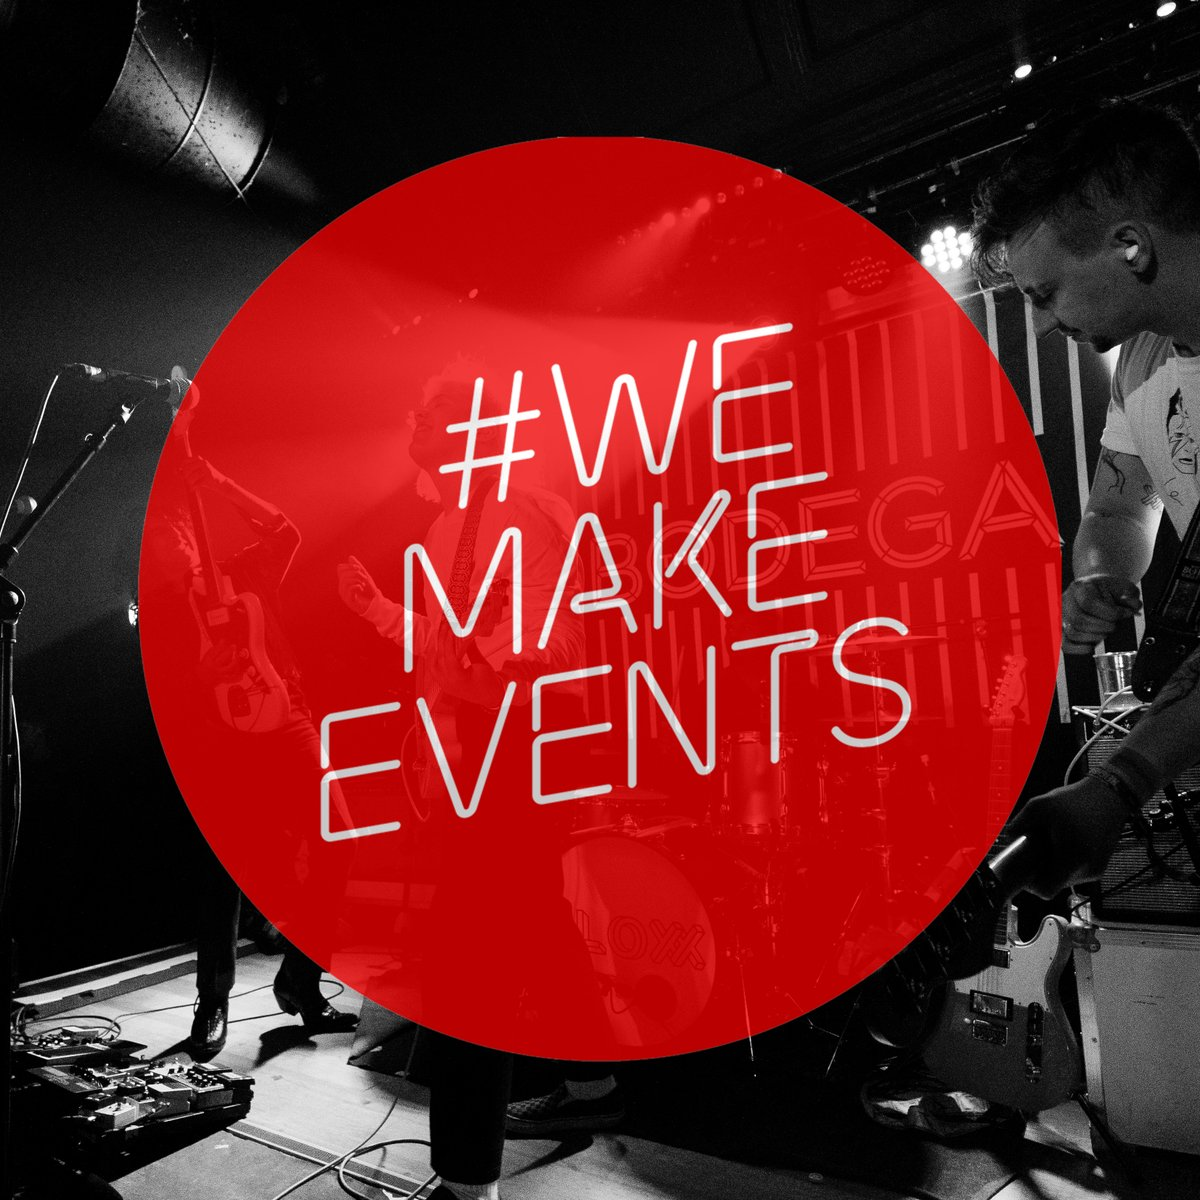 Today we stand with the industry in a day of action to call for more government support. To make one show happen, we rely on artists, tour managers, sound engineers, venue management, bar staff, ticketing teams, security and loads more.  More needs to be done. #WeMakeEvents https://t.co/SfCMJ8tWtm